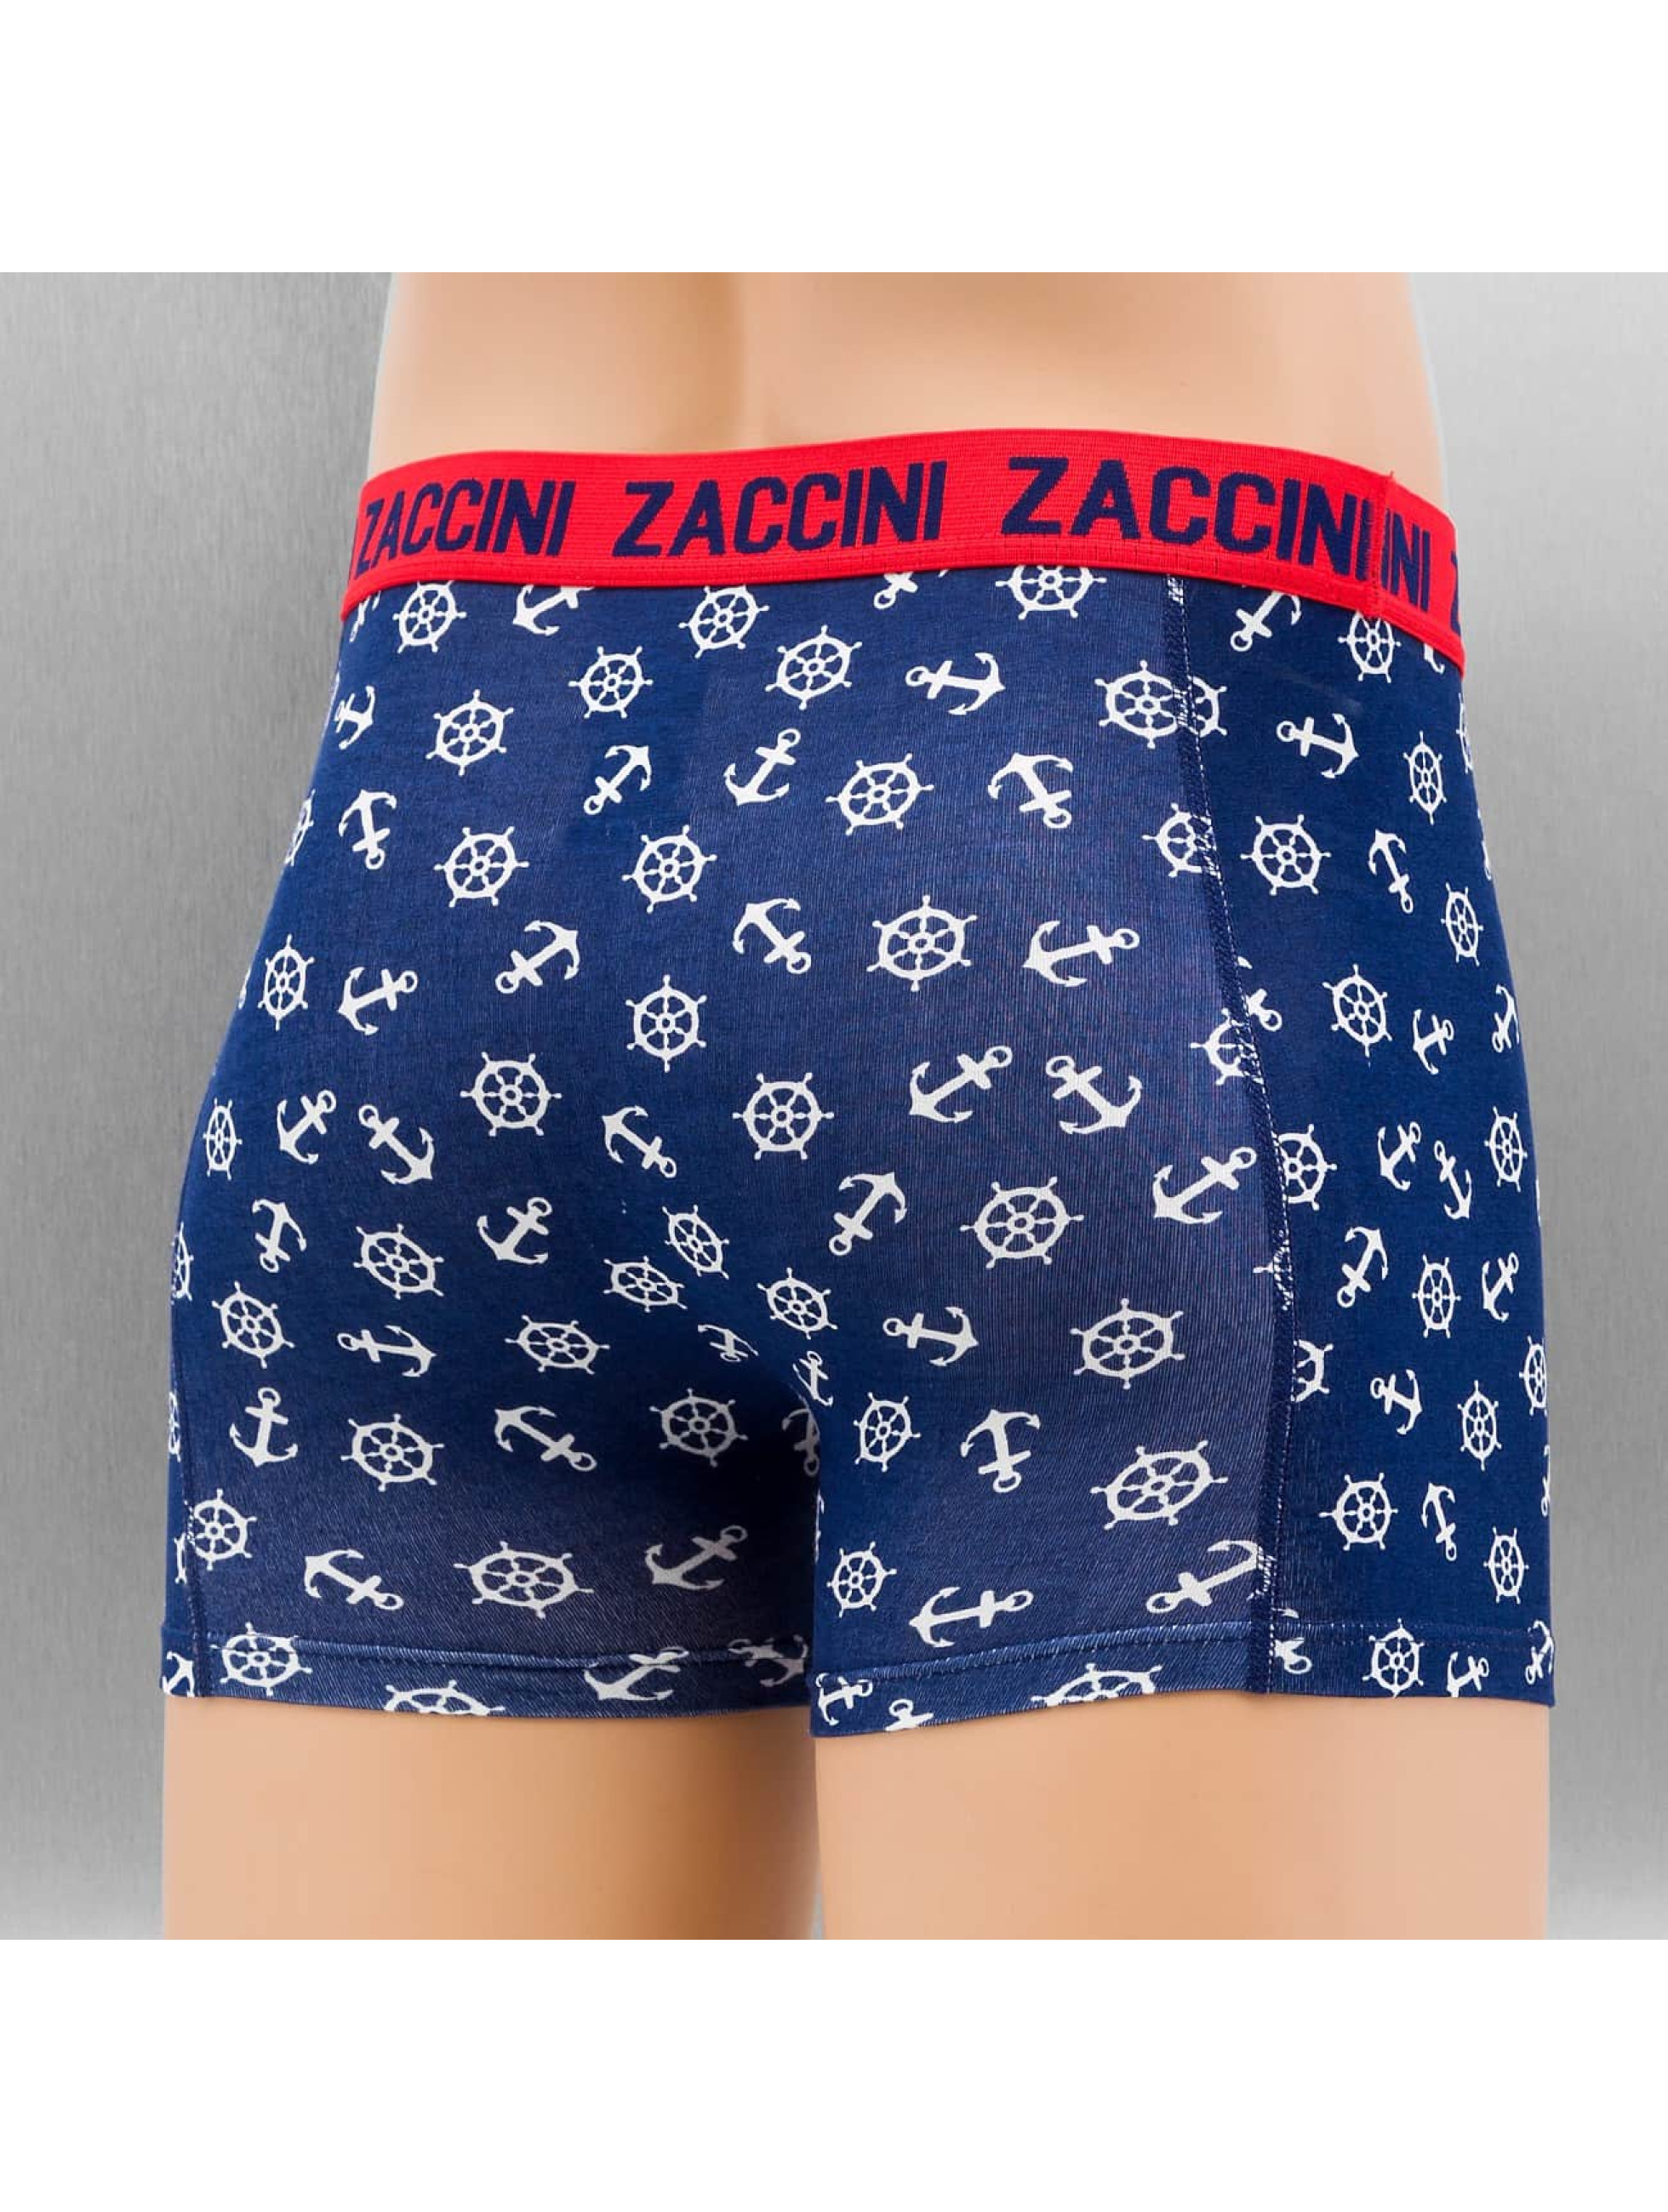 Zaccini Boxershorts Nautical 2-Pack blau